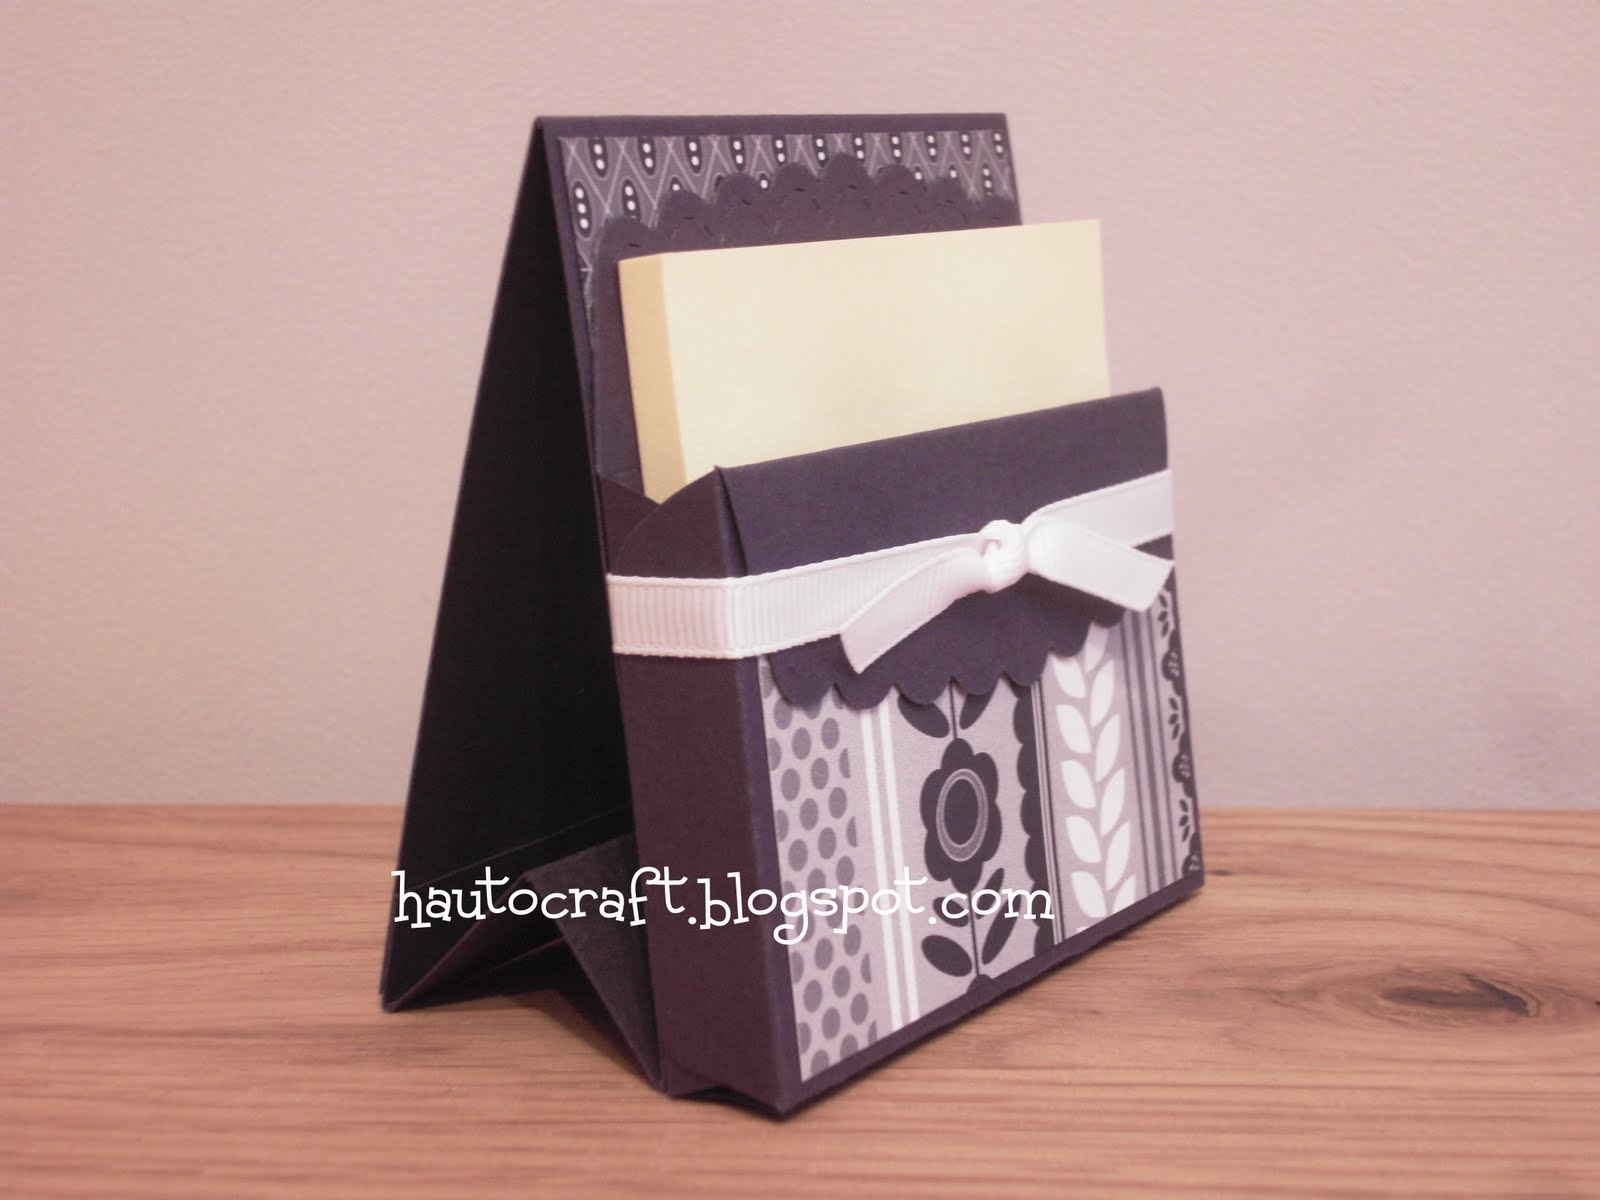 Hau To Craft: Post It Note Holders